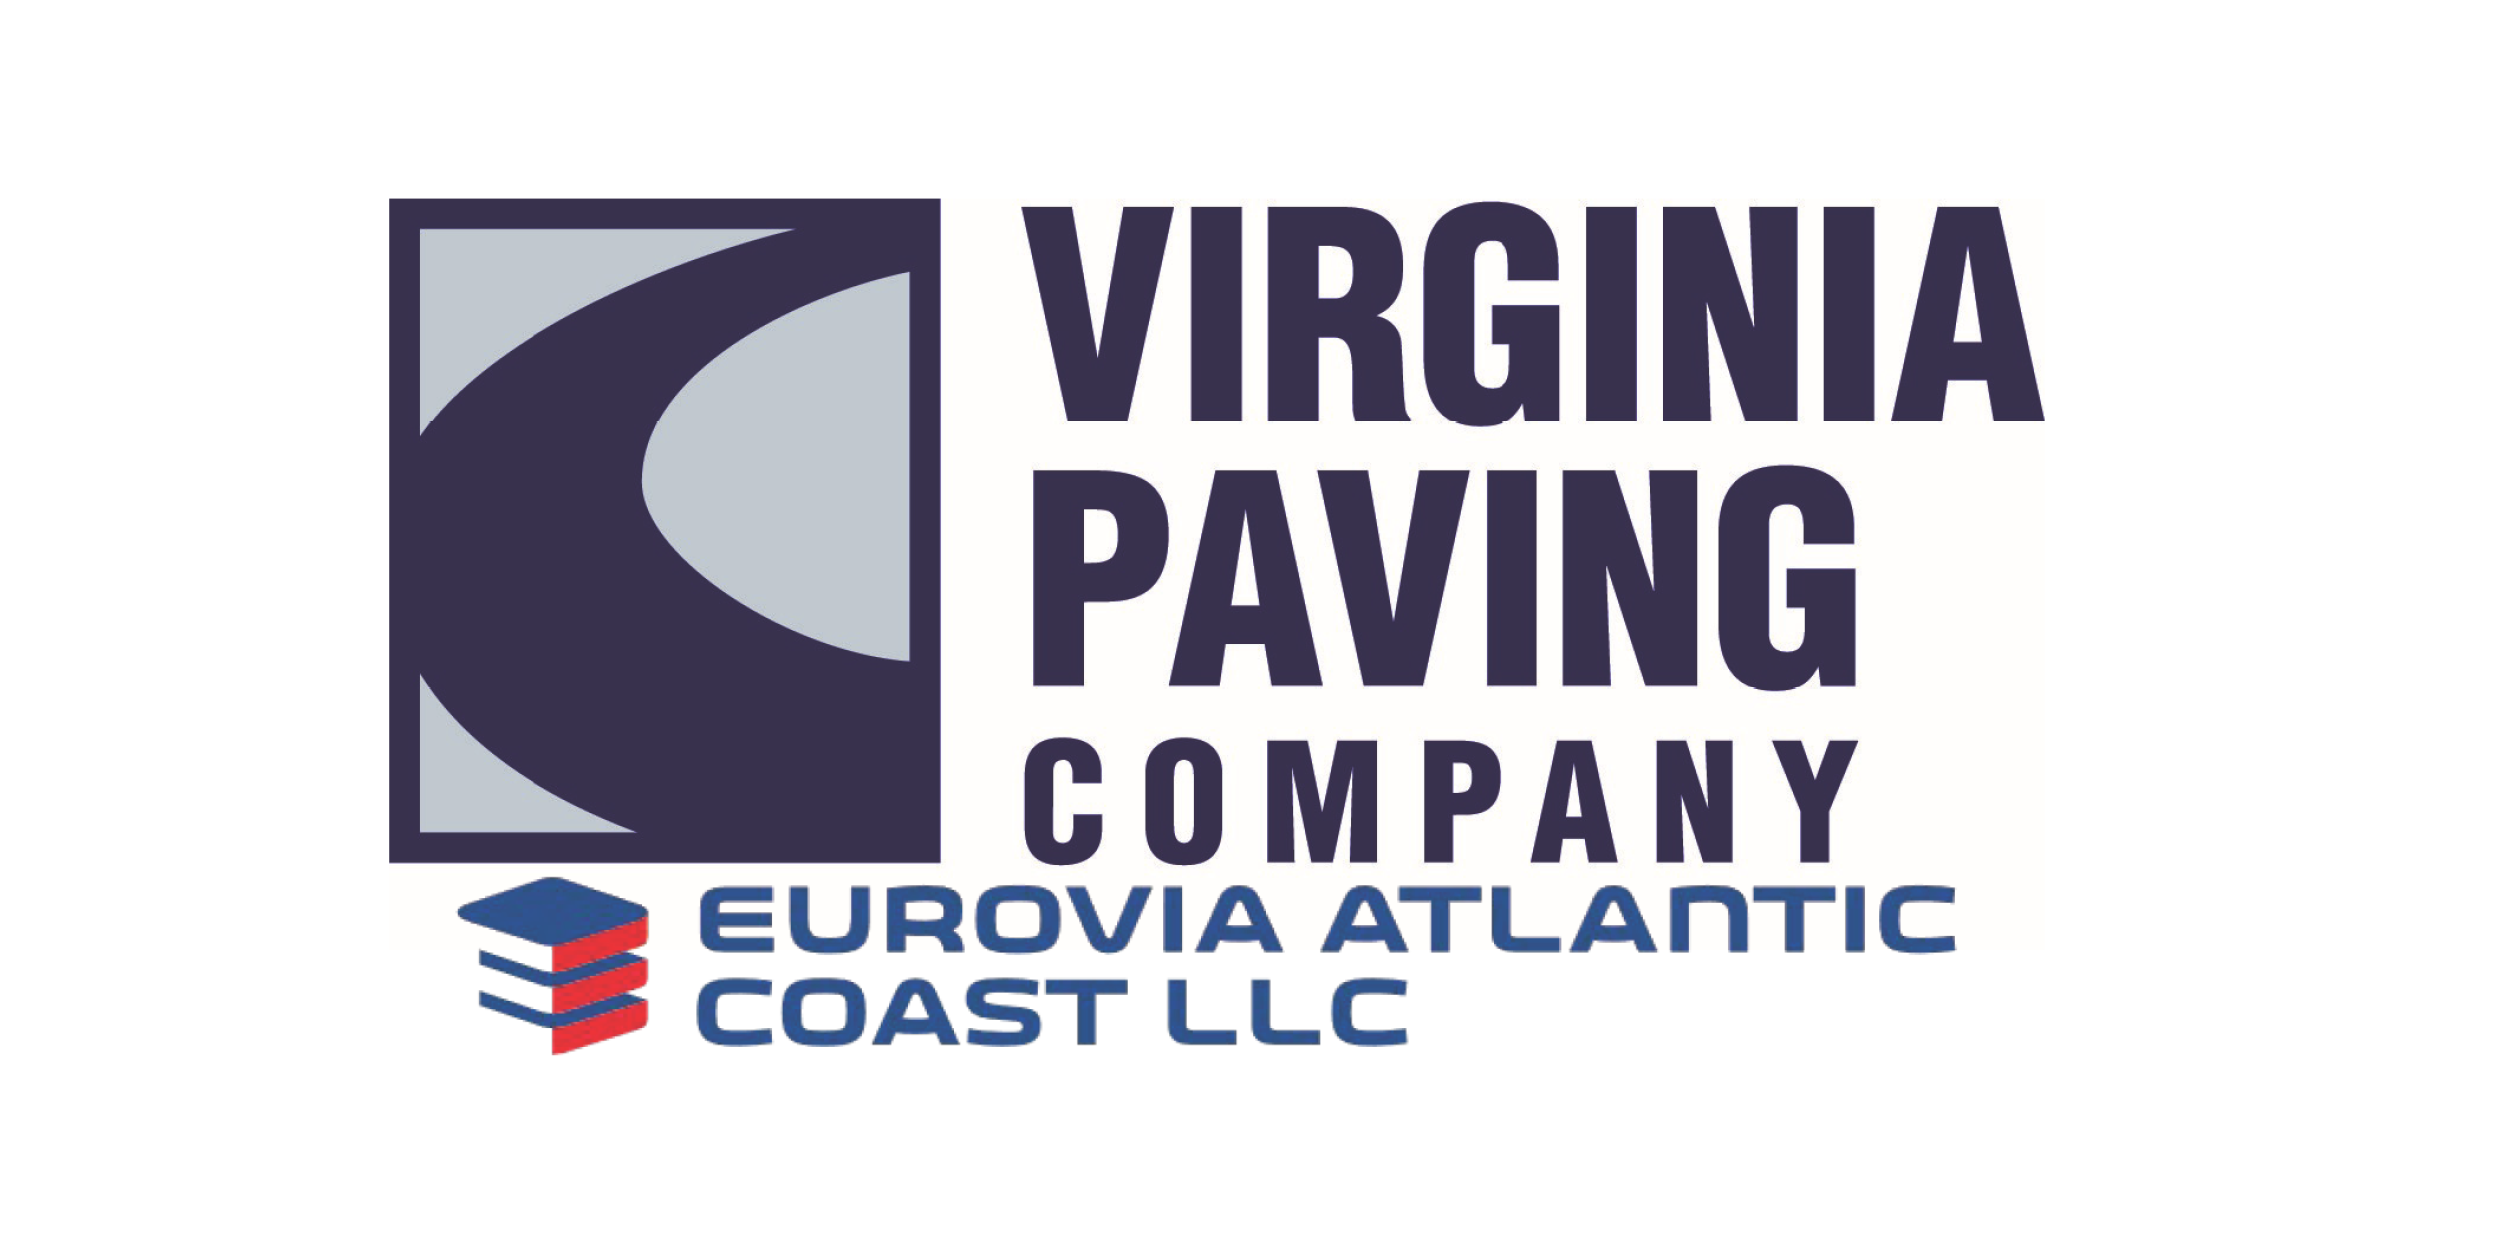 arlington-va-turley-trot-mayflower-sponsor-virginia-paving-new-logo